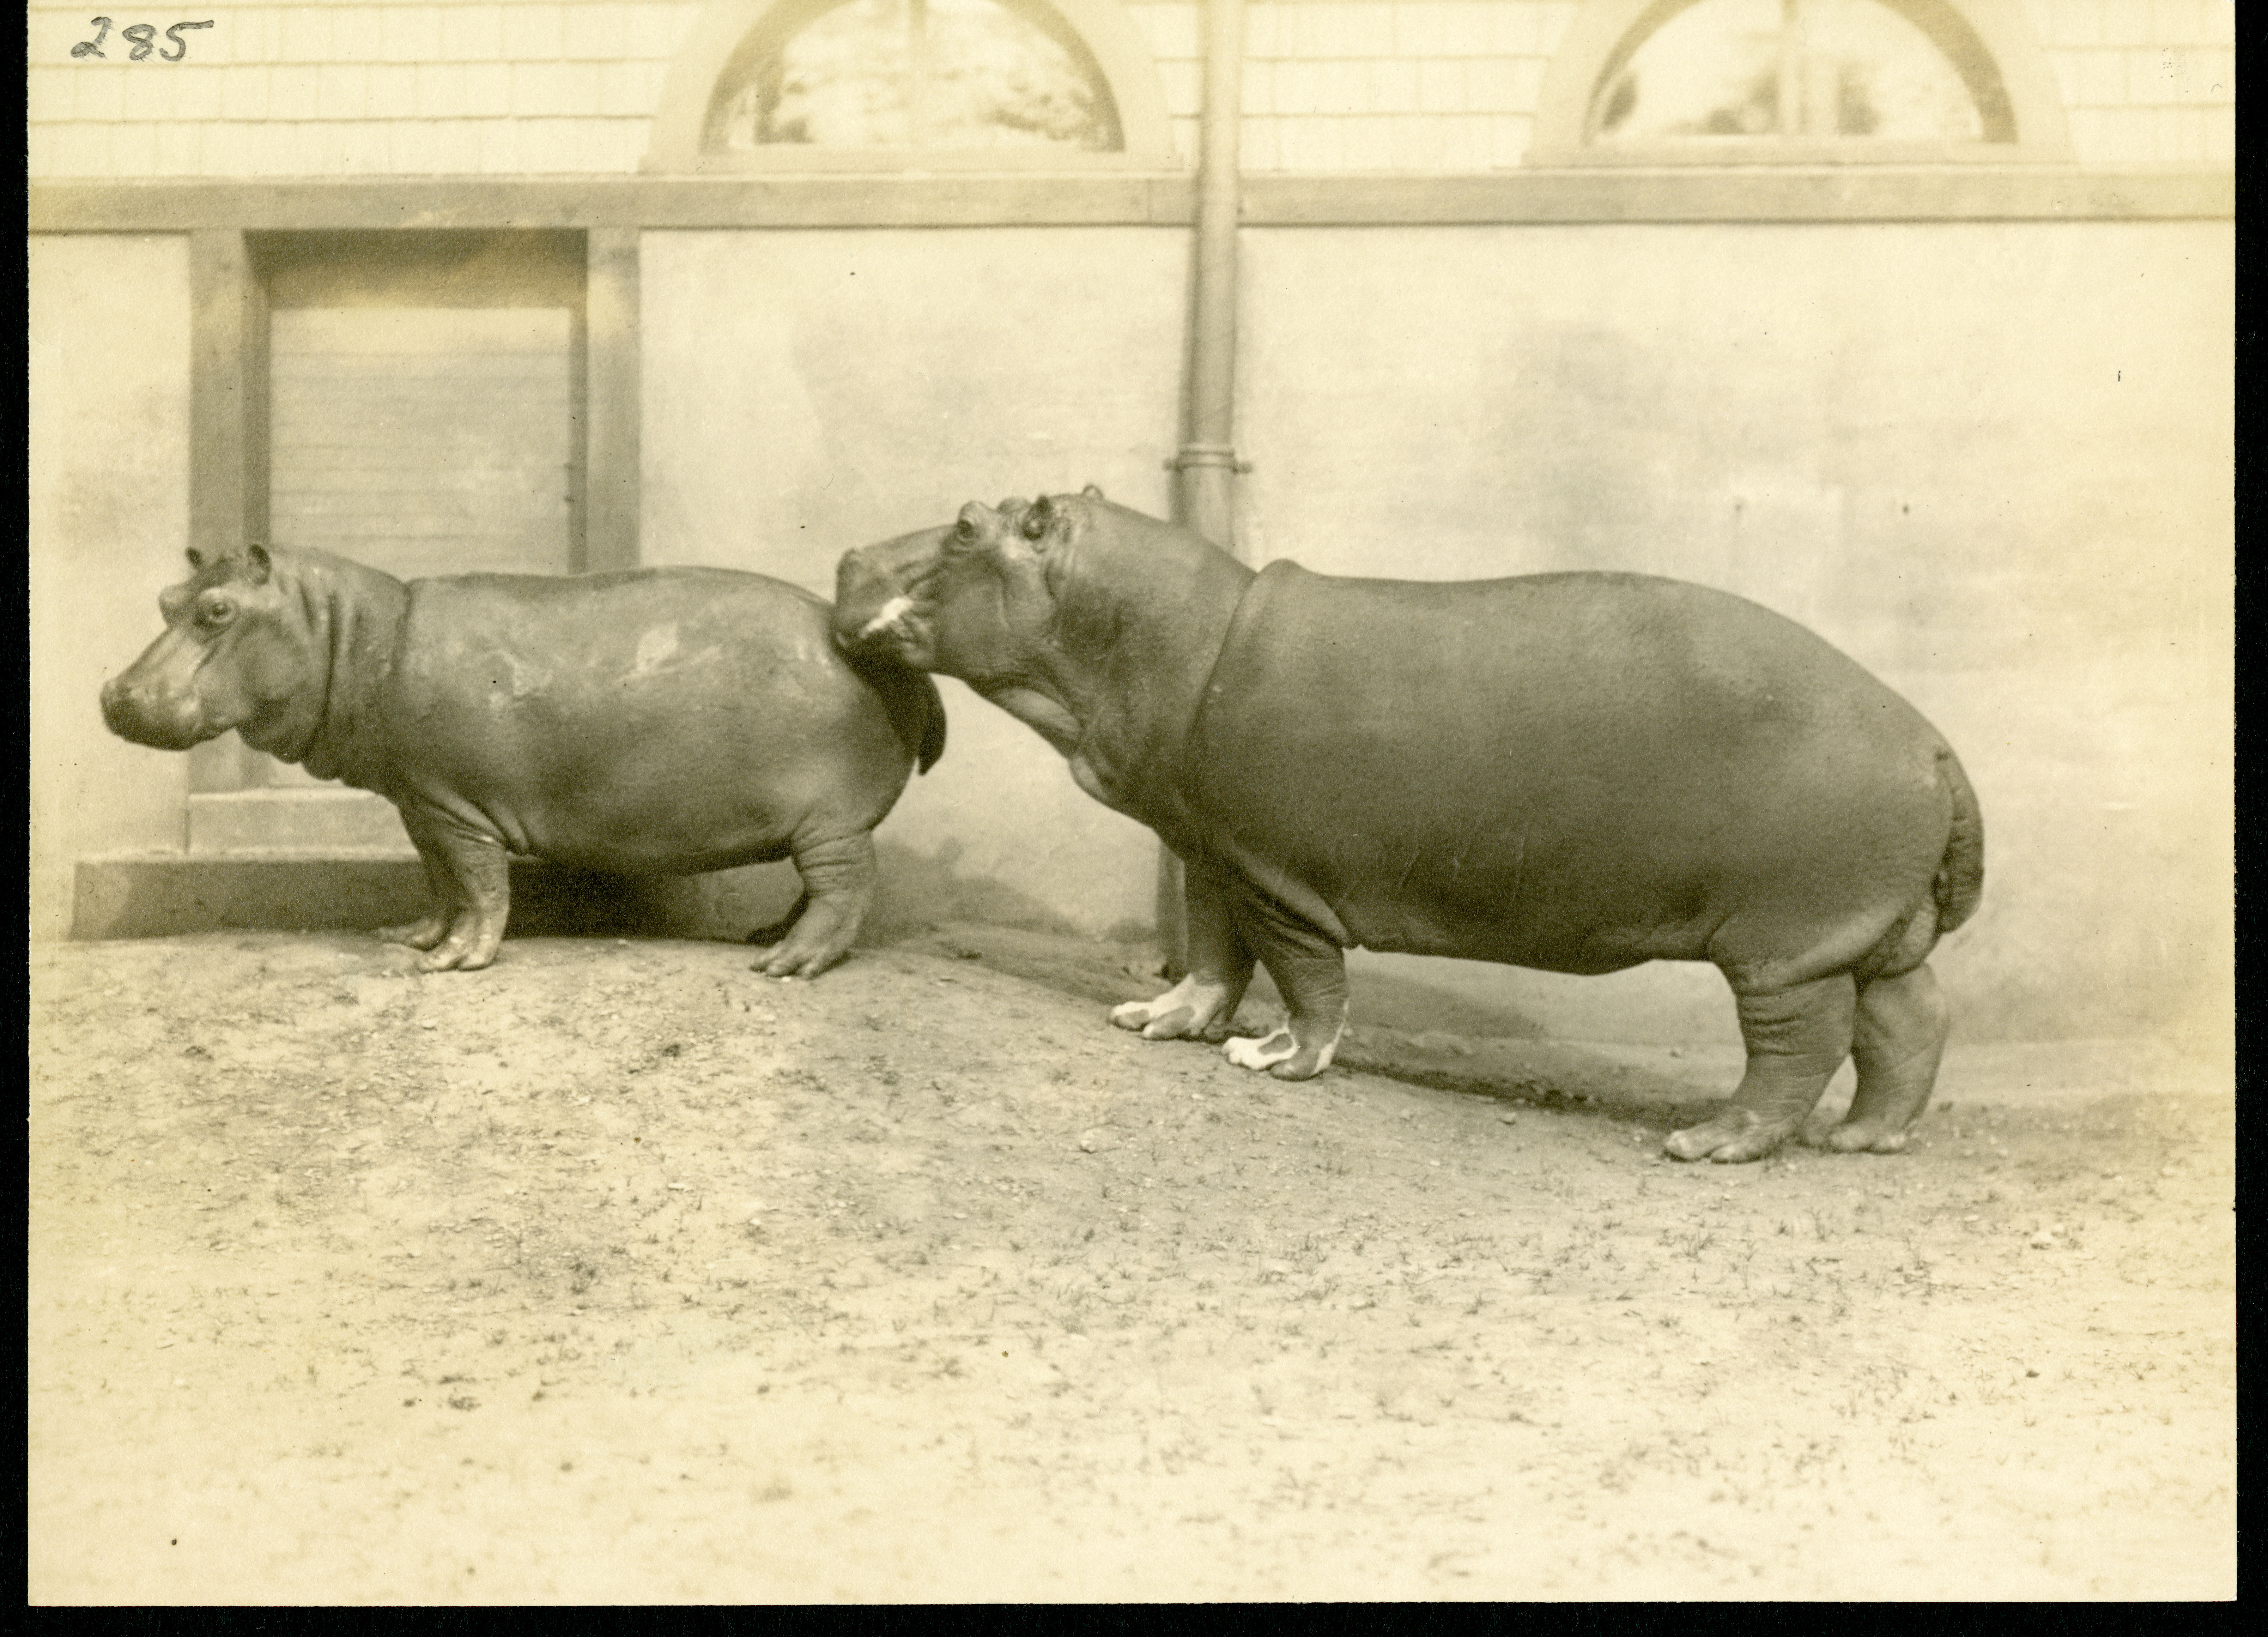 Image of two hippos. The smaller hippo is in the front.